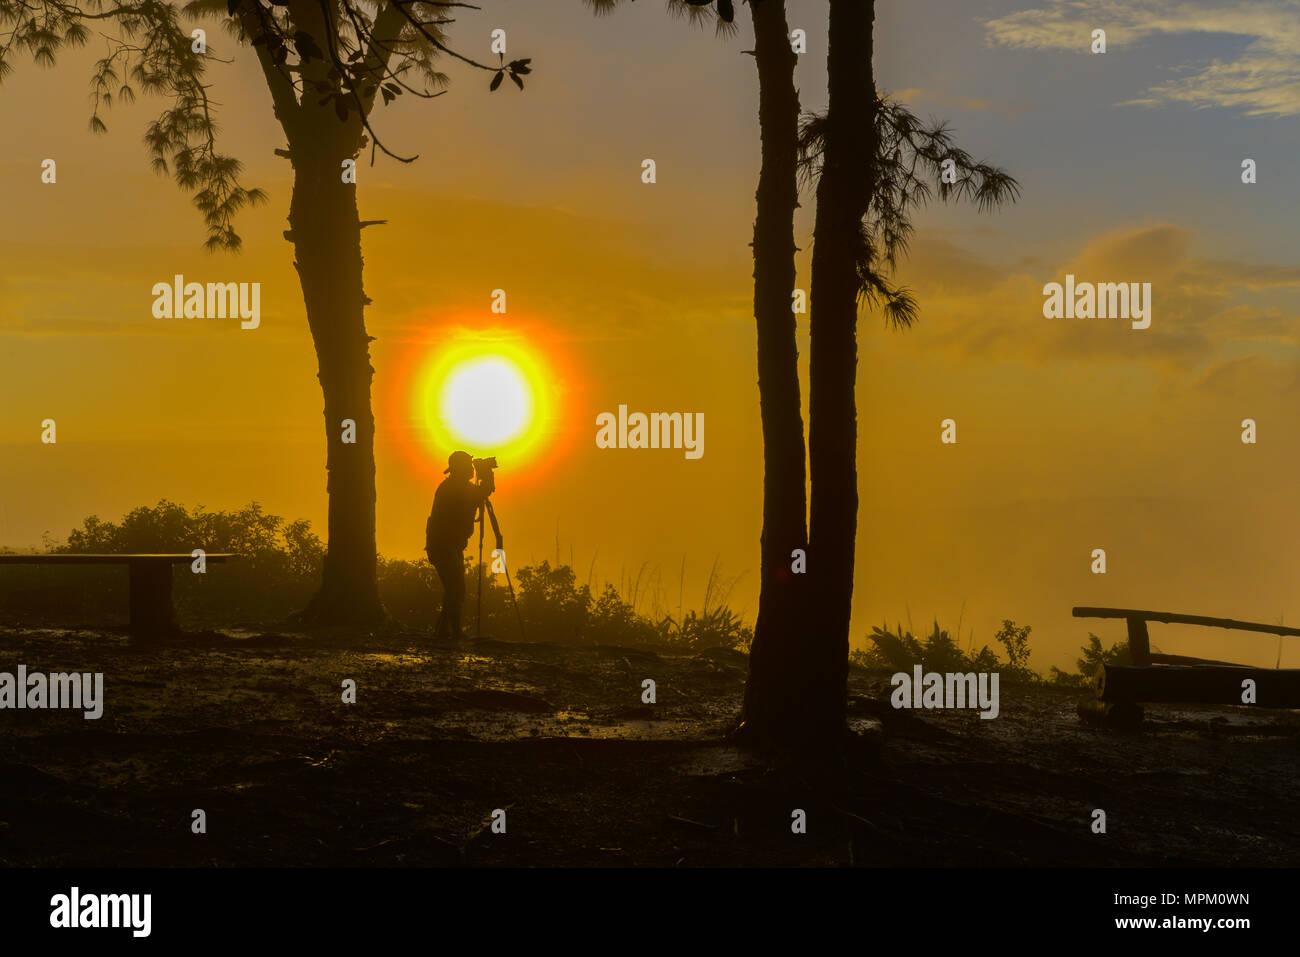 Un-identified photographer shooting photo of beautiful sunrise view in national park of Thailand - Stock Image